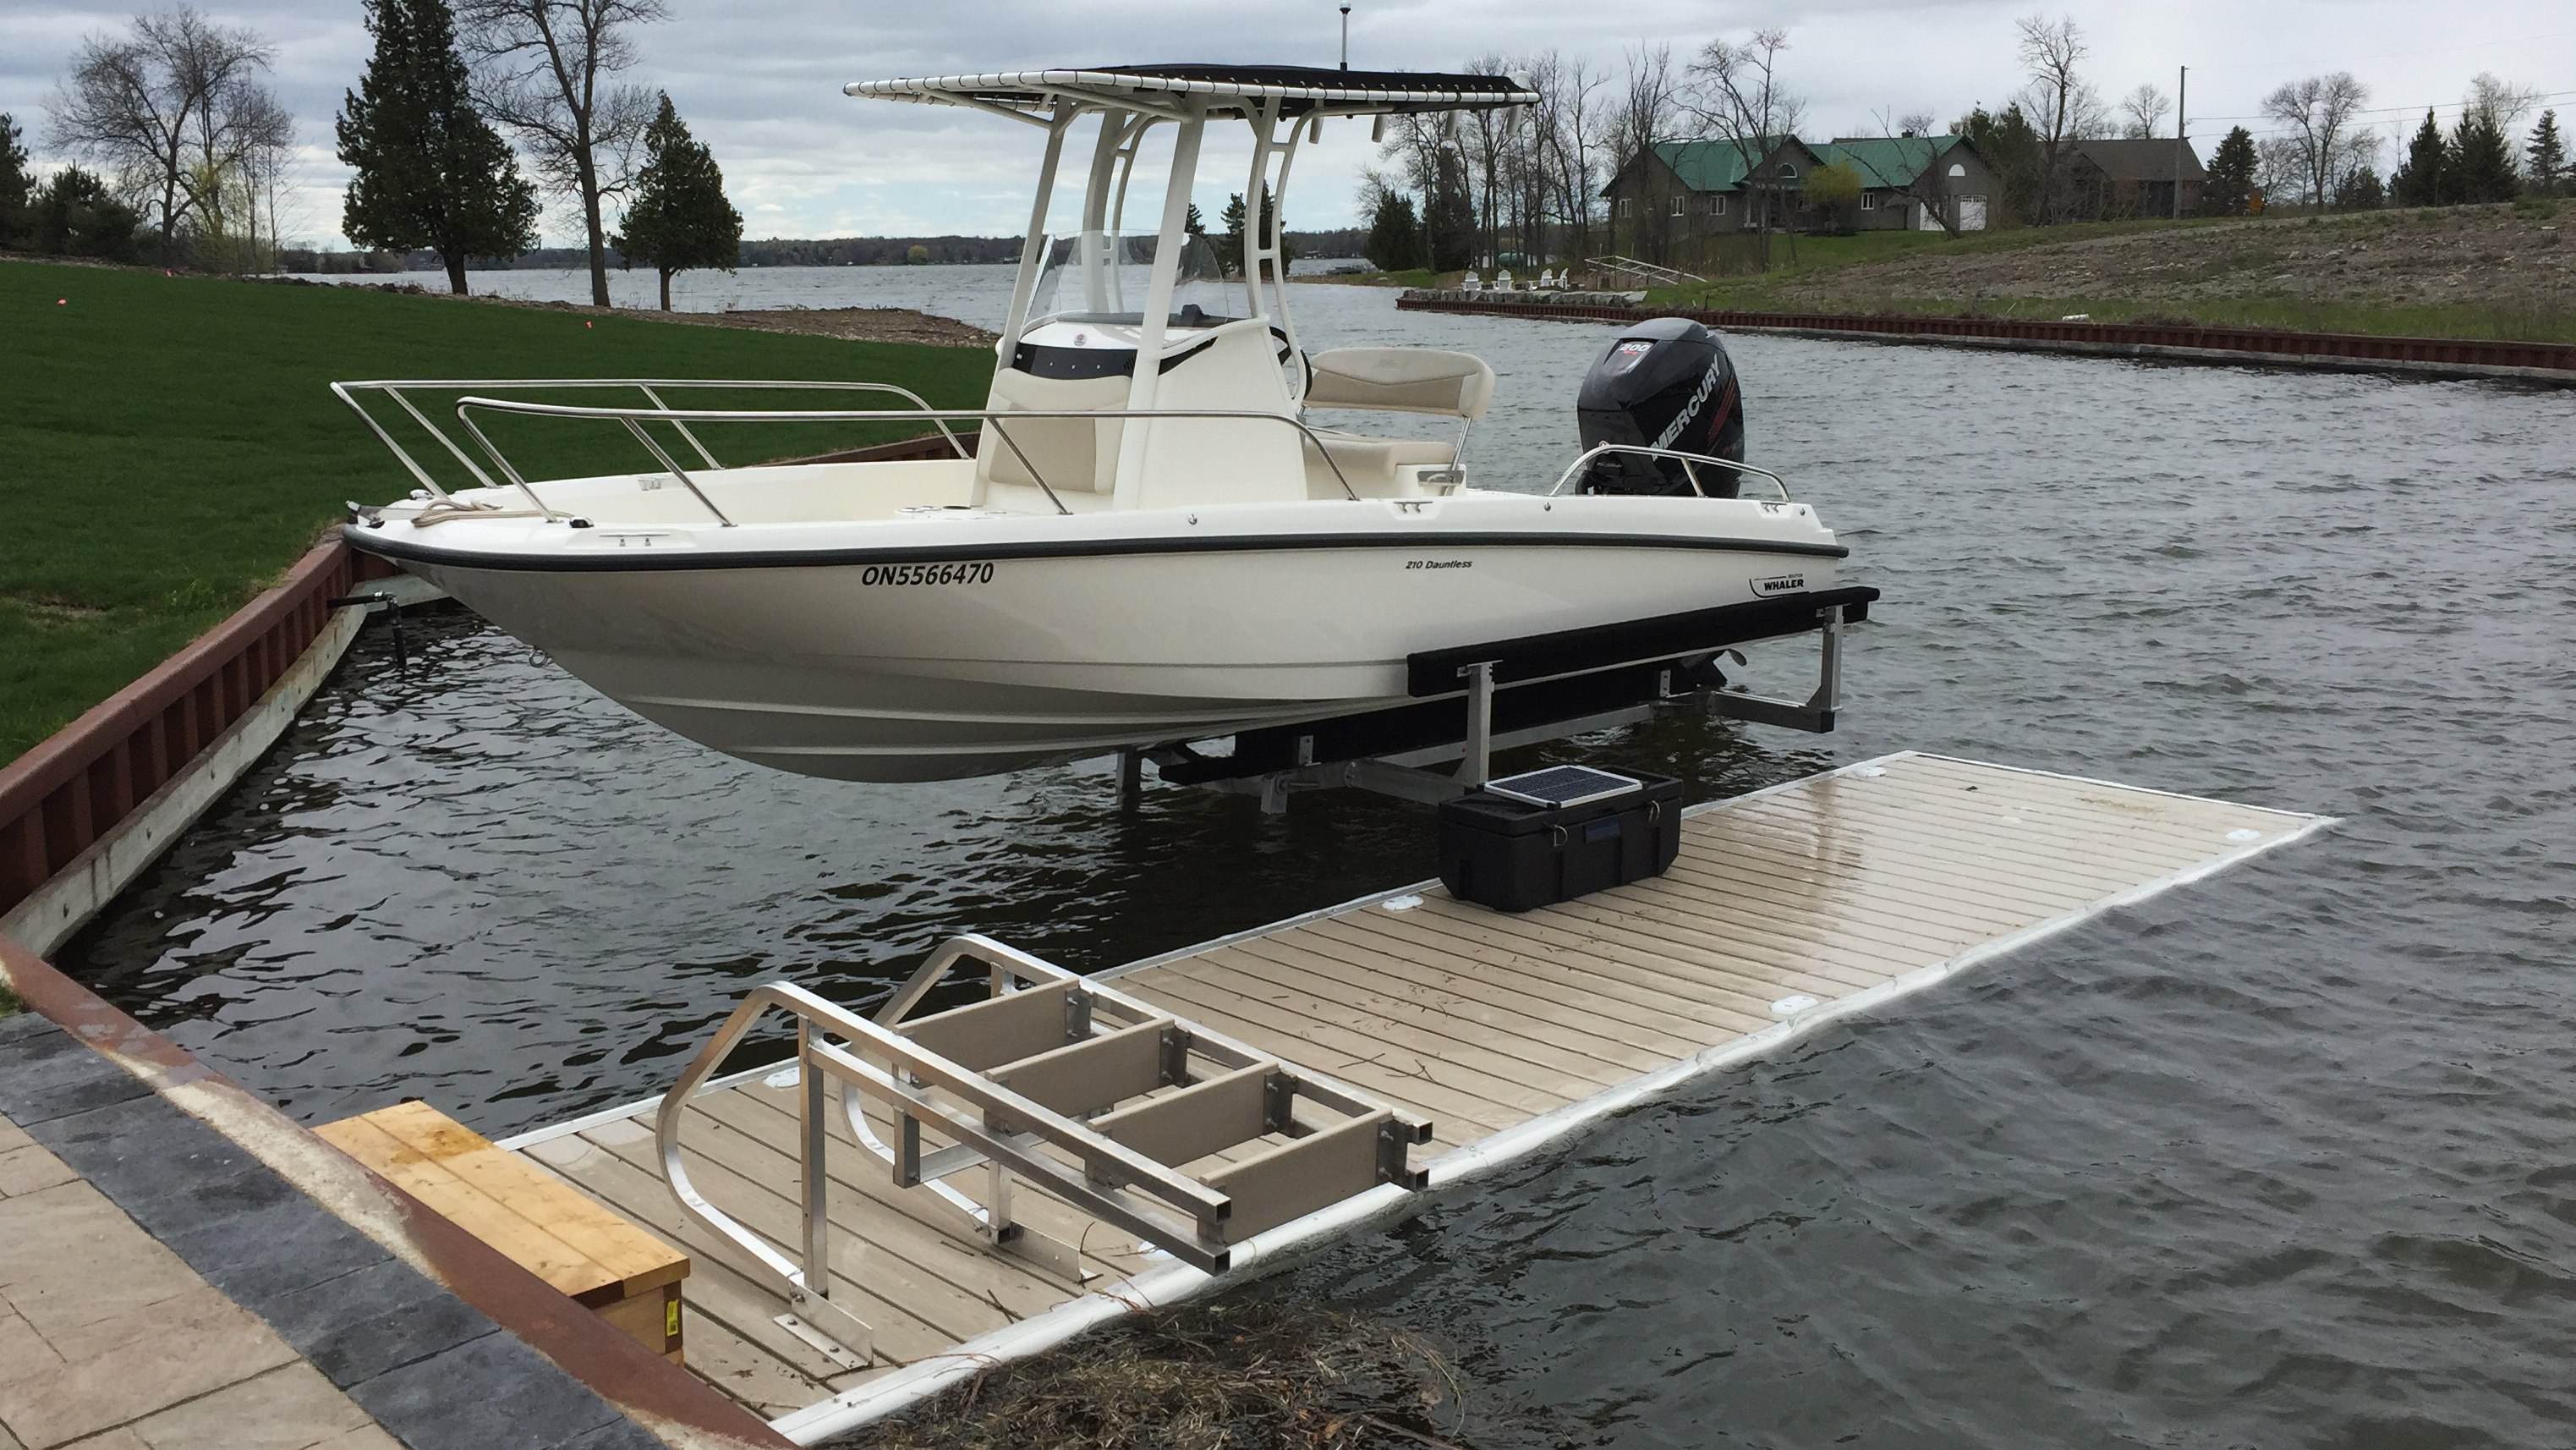 remote control boston whaler with Hydraulic Boat Lifts on United States furthermore 2008 Sea Ray 240 Sundancer further 12451 moreover Santei Pontoon 104301 furthermore Yamaha Sx230 24582.